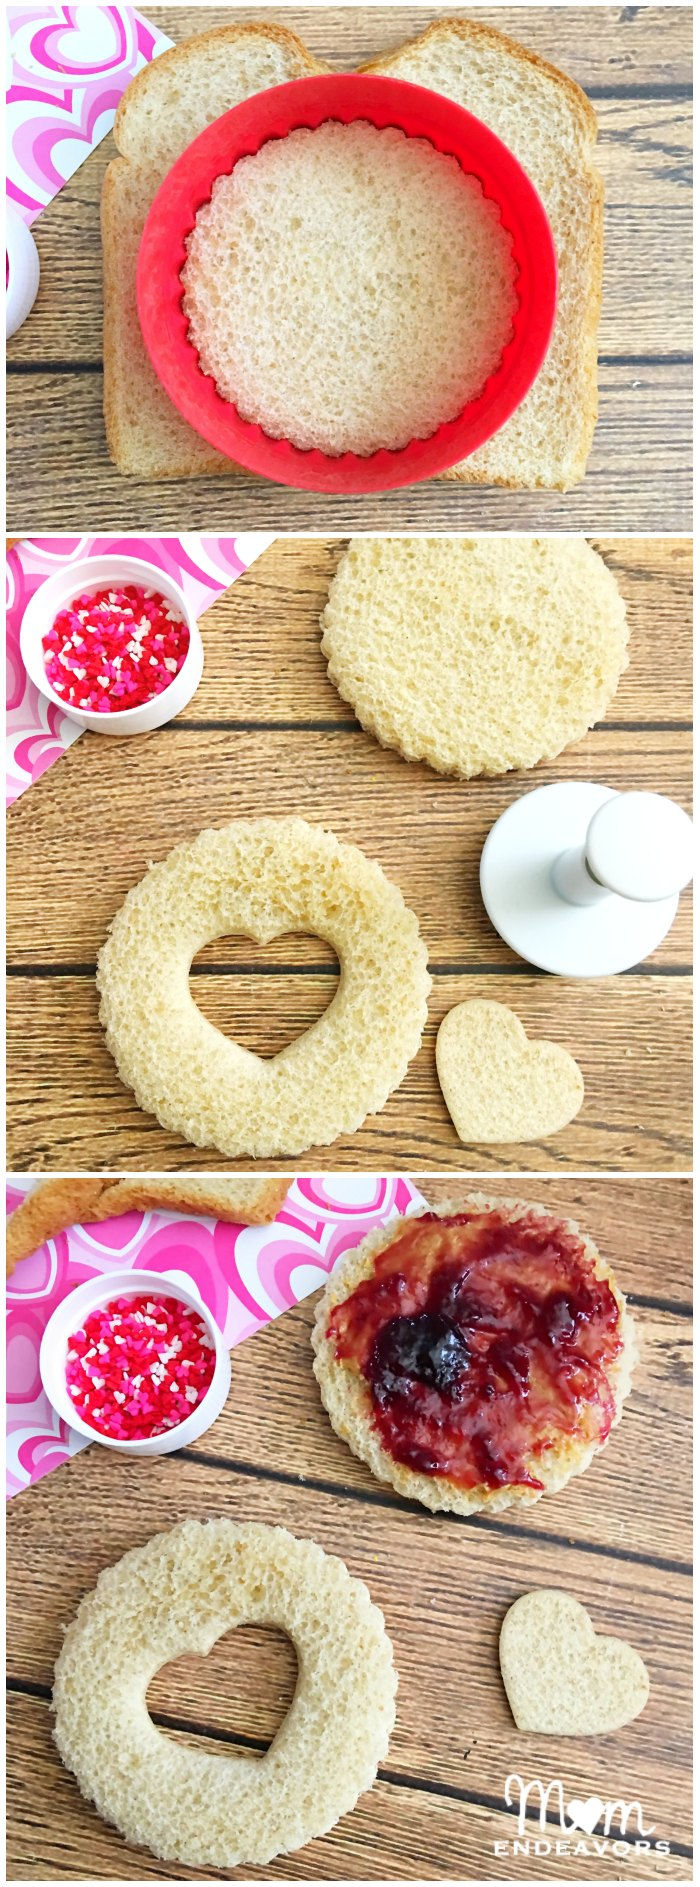 Easy Heart Sandwiches